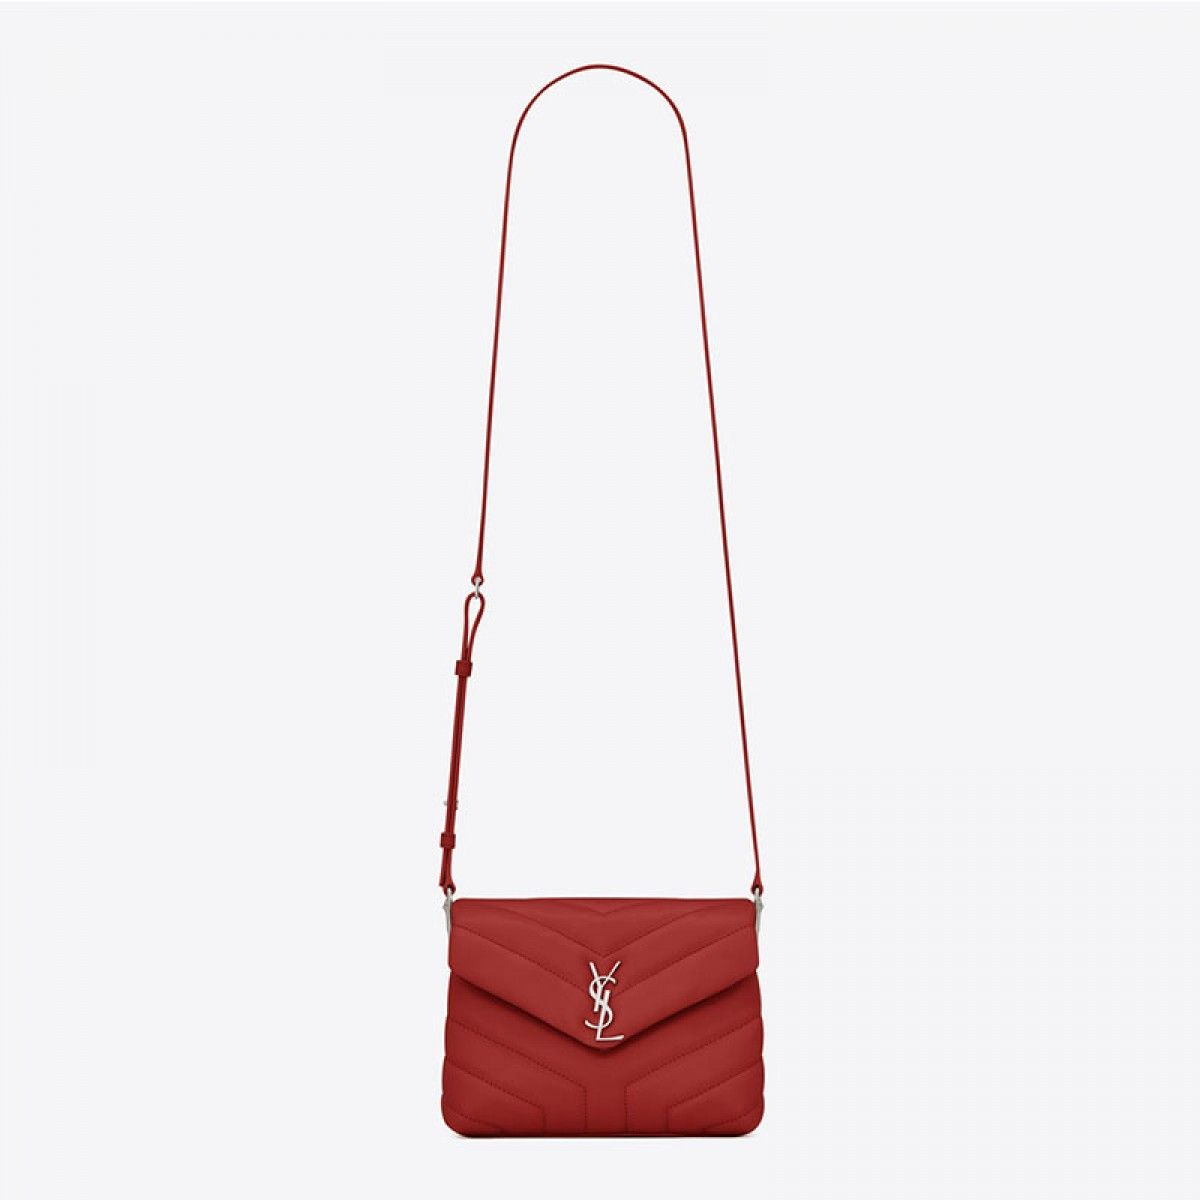 196ea06892 Saint Laurent Toy Loulou Strap Bag In